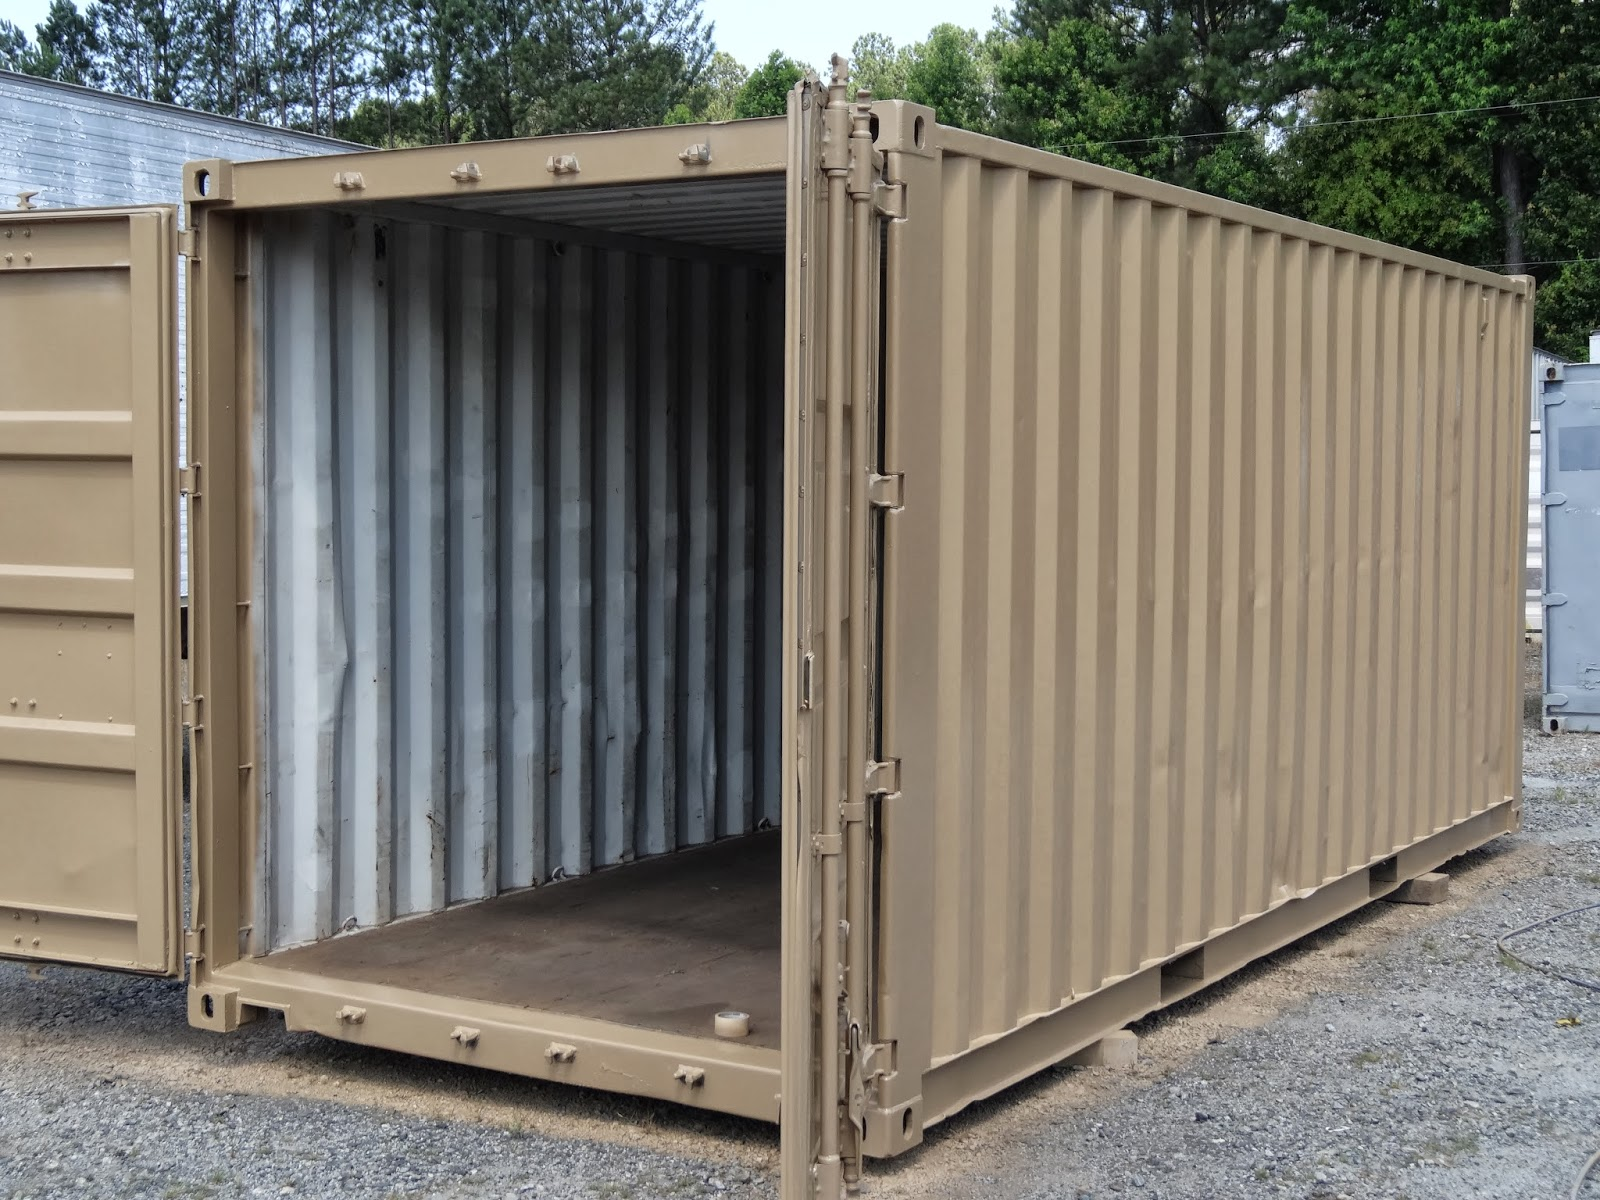 Three Common Uses for a Shipping Container